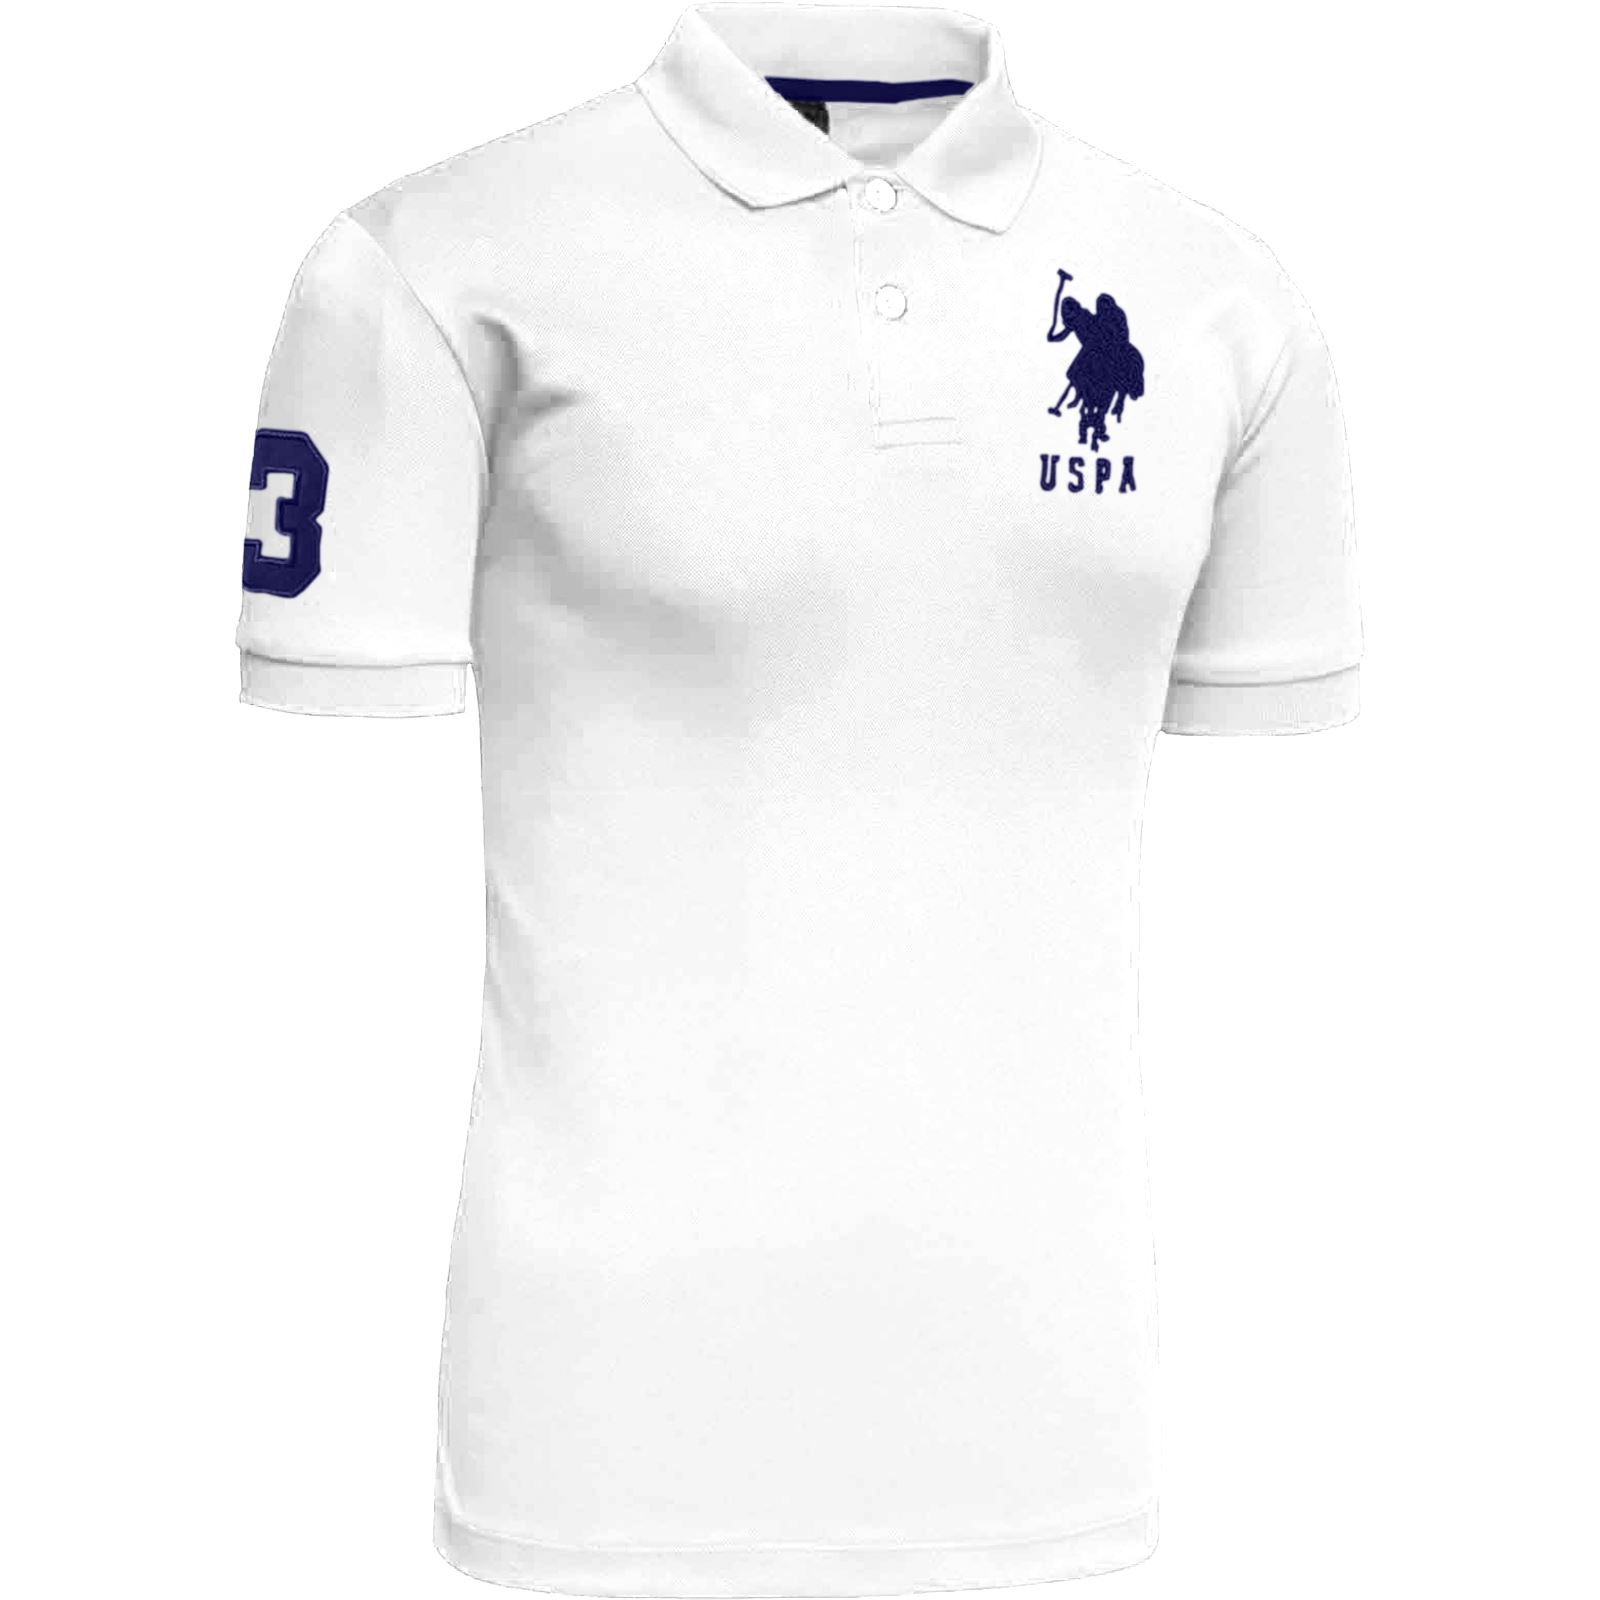 Mens us polo assn pique short sleeve cotton t shirt for Best polo t shirts for men